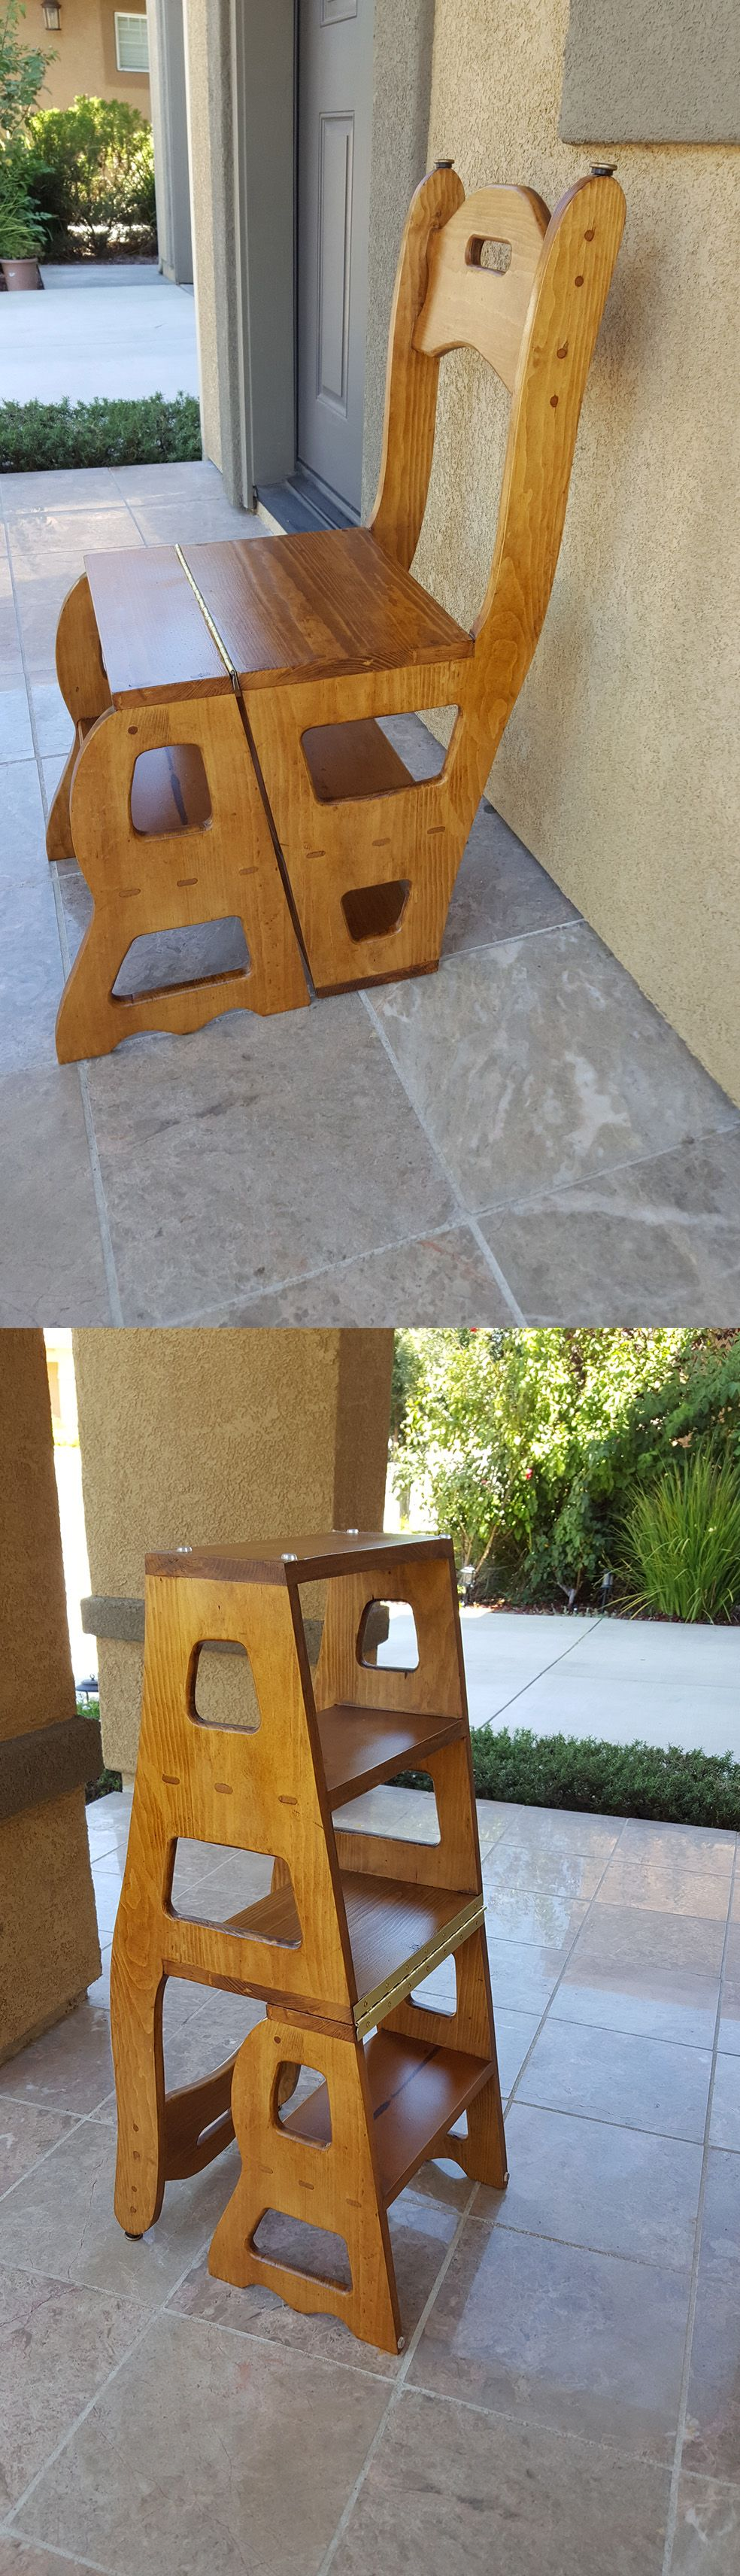 Check out this awesome custom project This convertible step stool and chair plan allows you